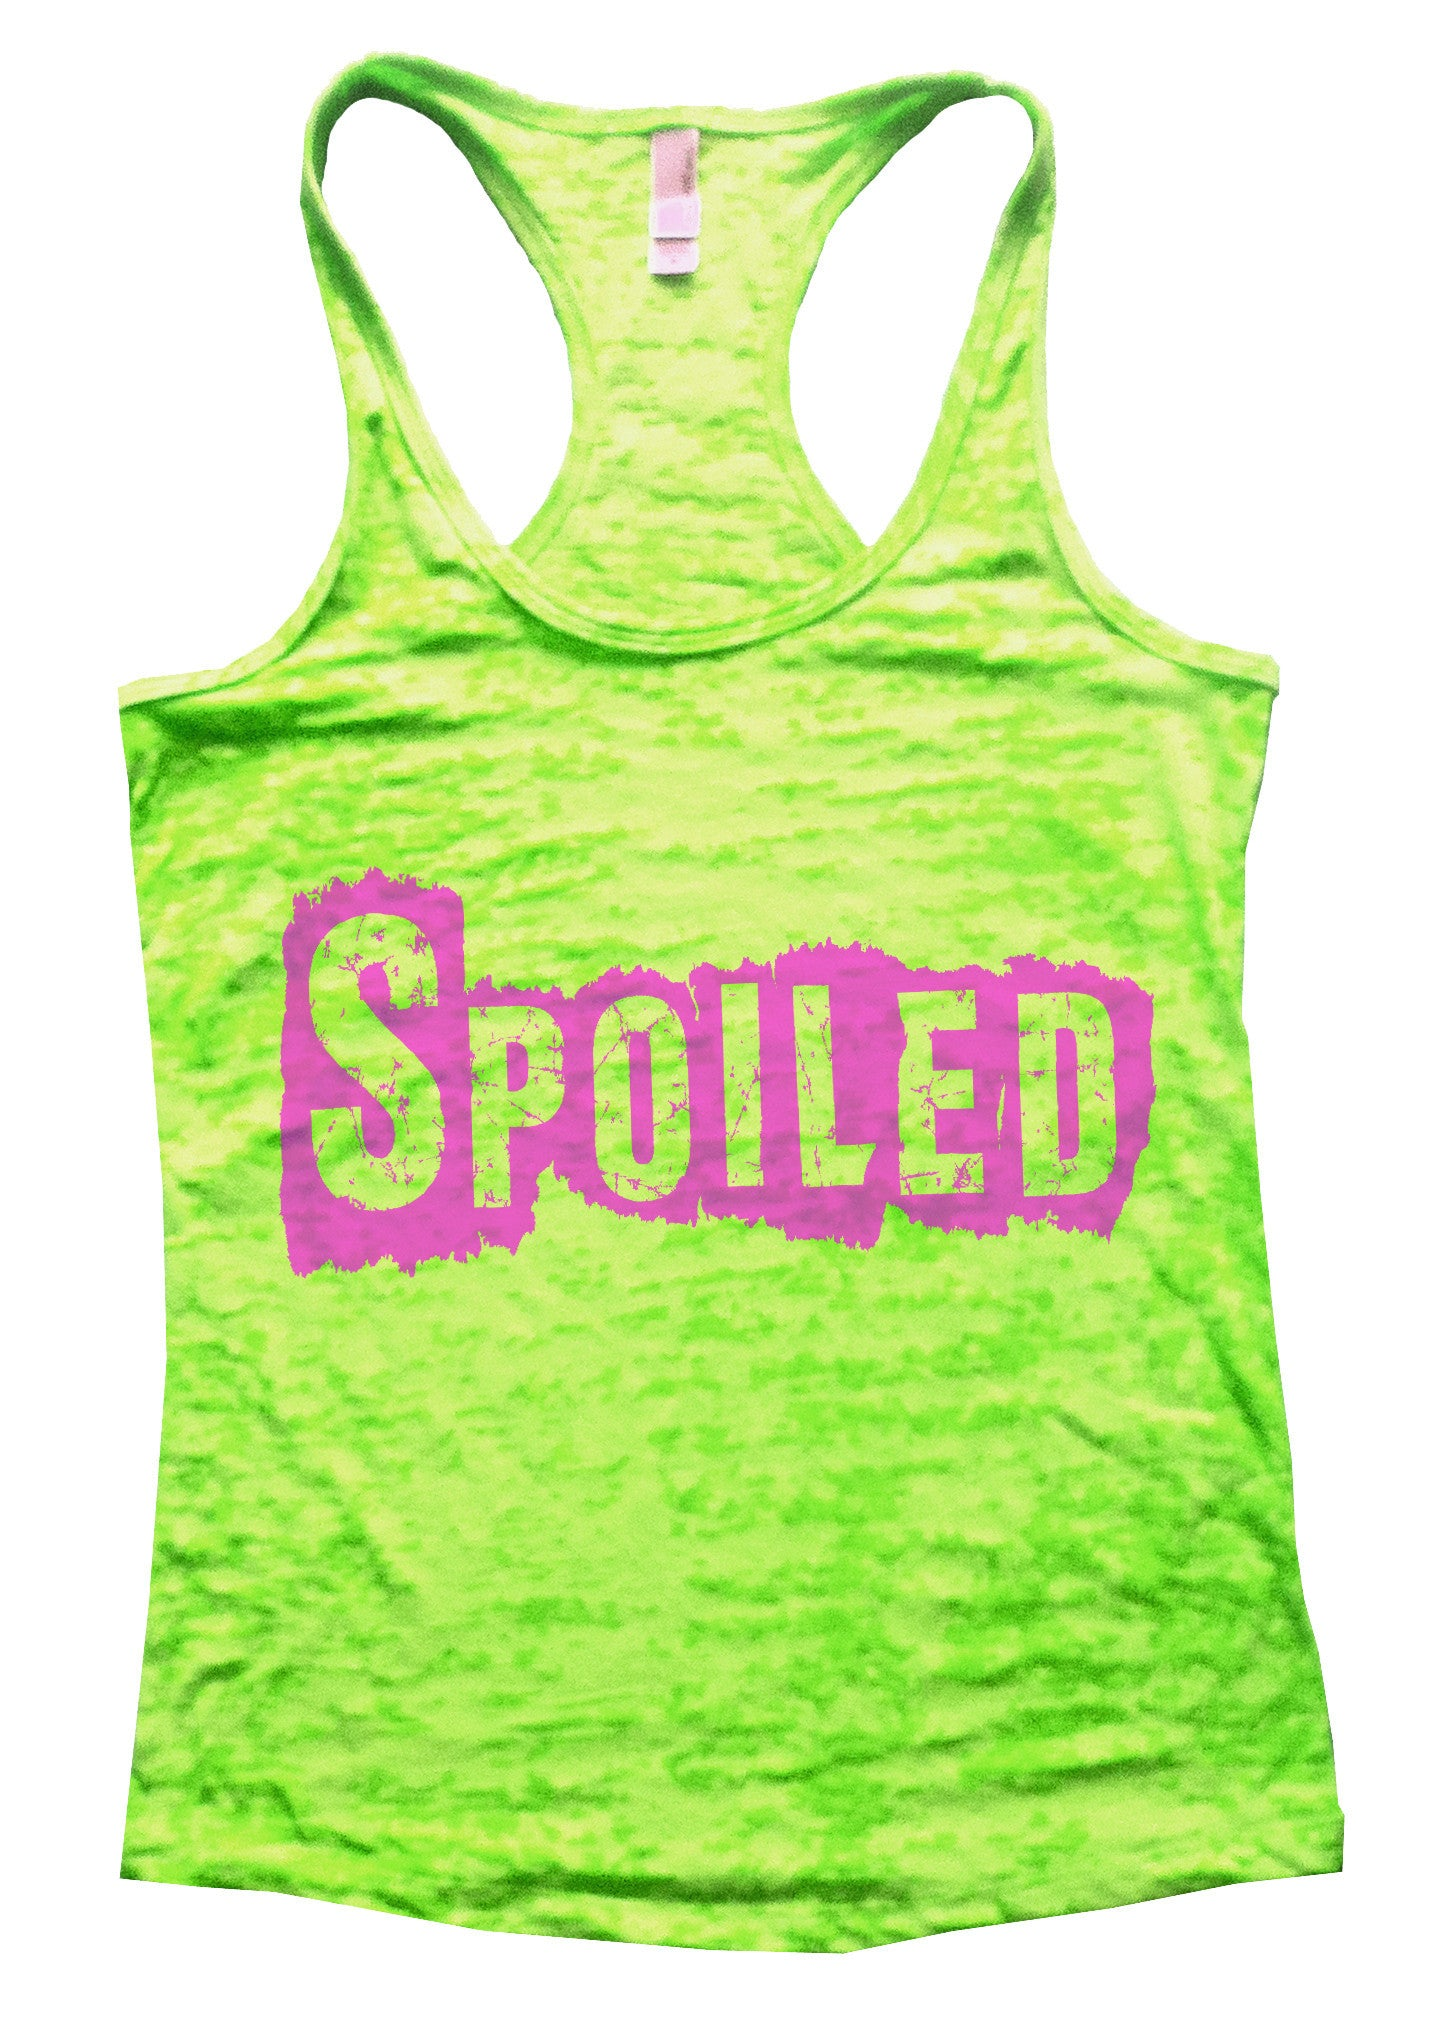 Spoiled Burnout Tank Top By BurnoutTankTops.com - 600 - Funny Shirts Tank Tops Burnouts and Triblends  - 2